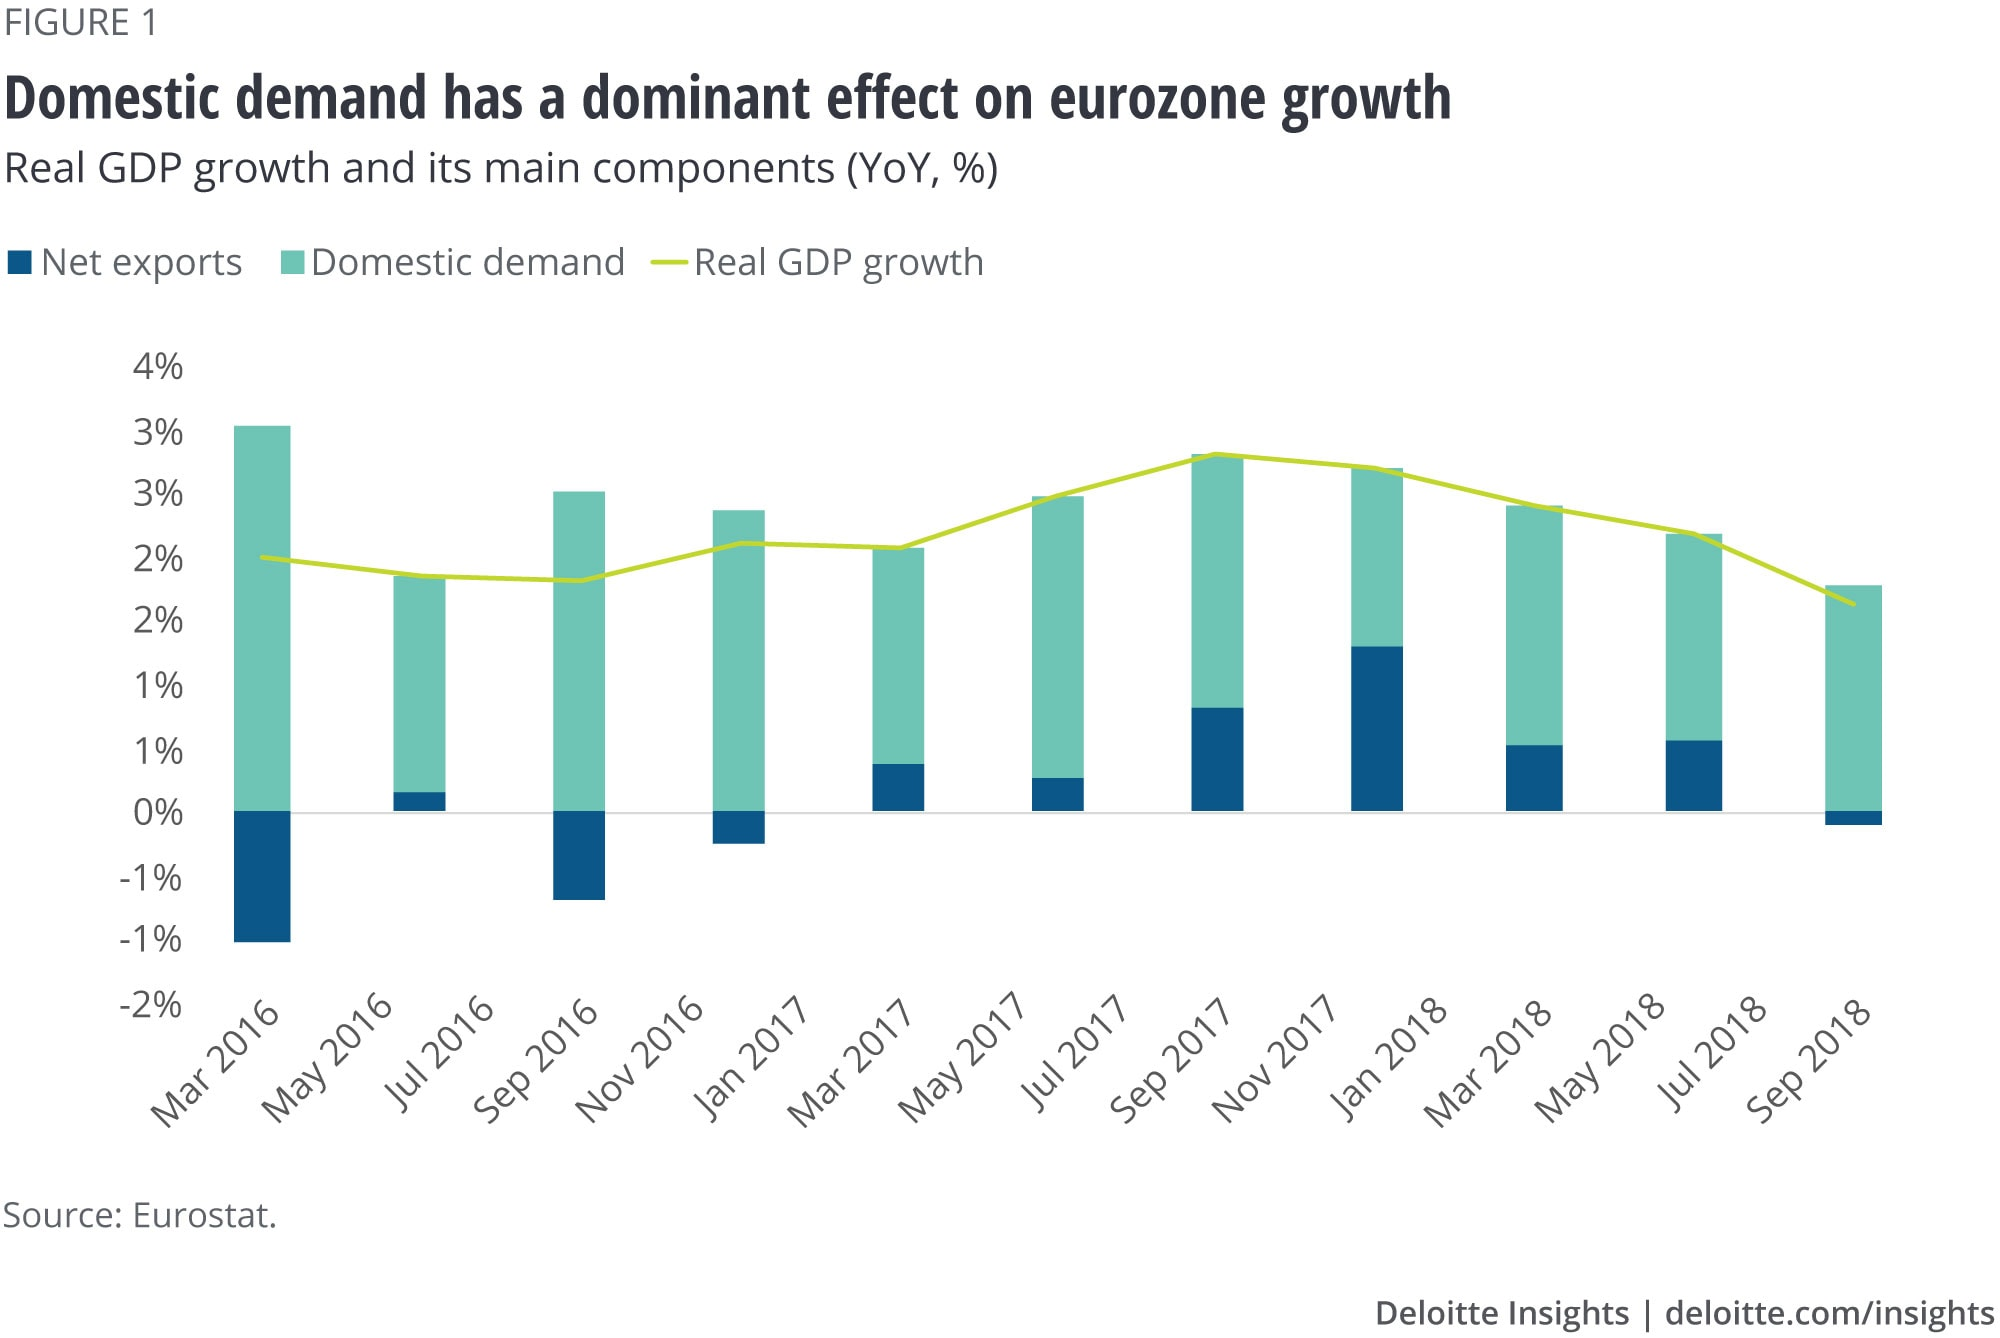 Domestic demand has a dominant effect on eurozone growth